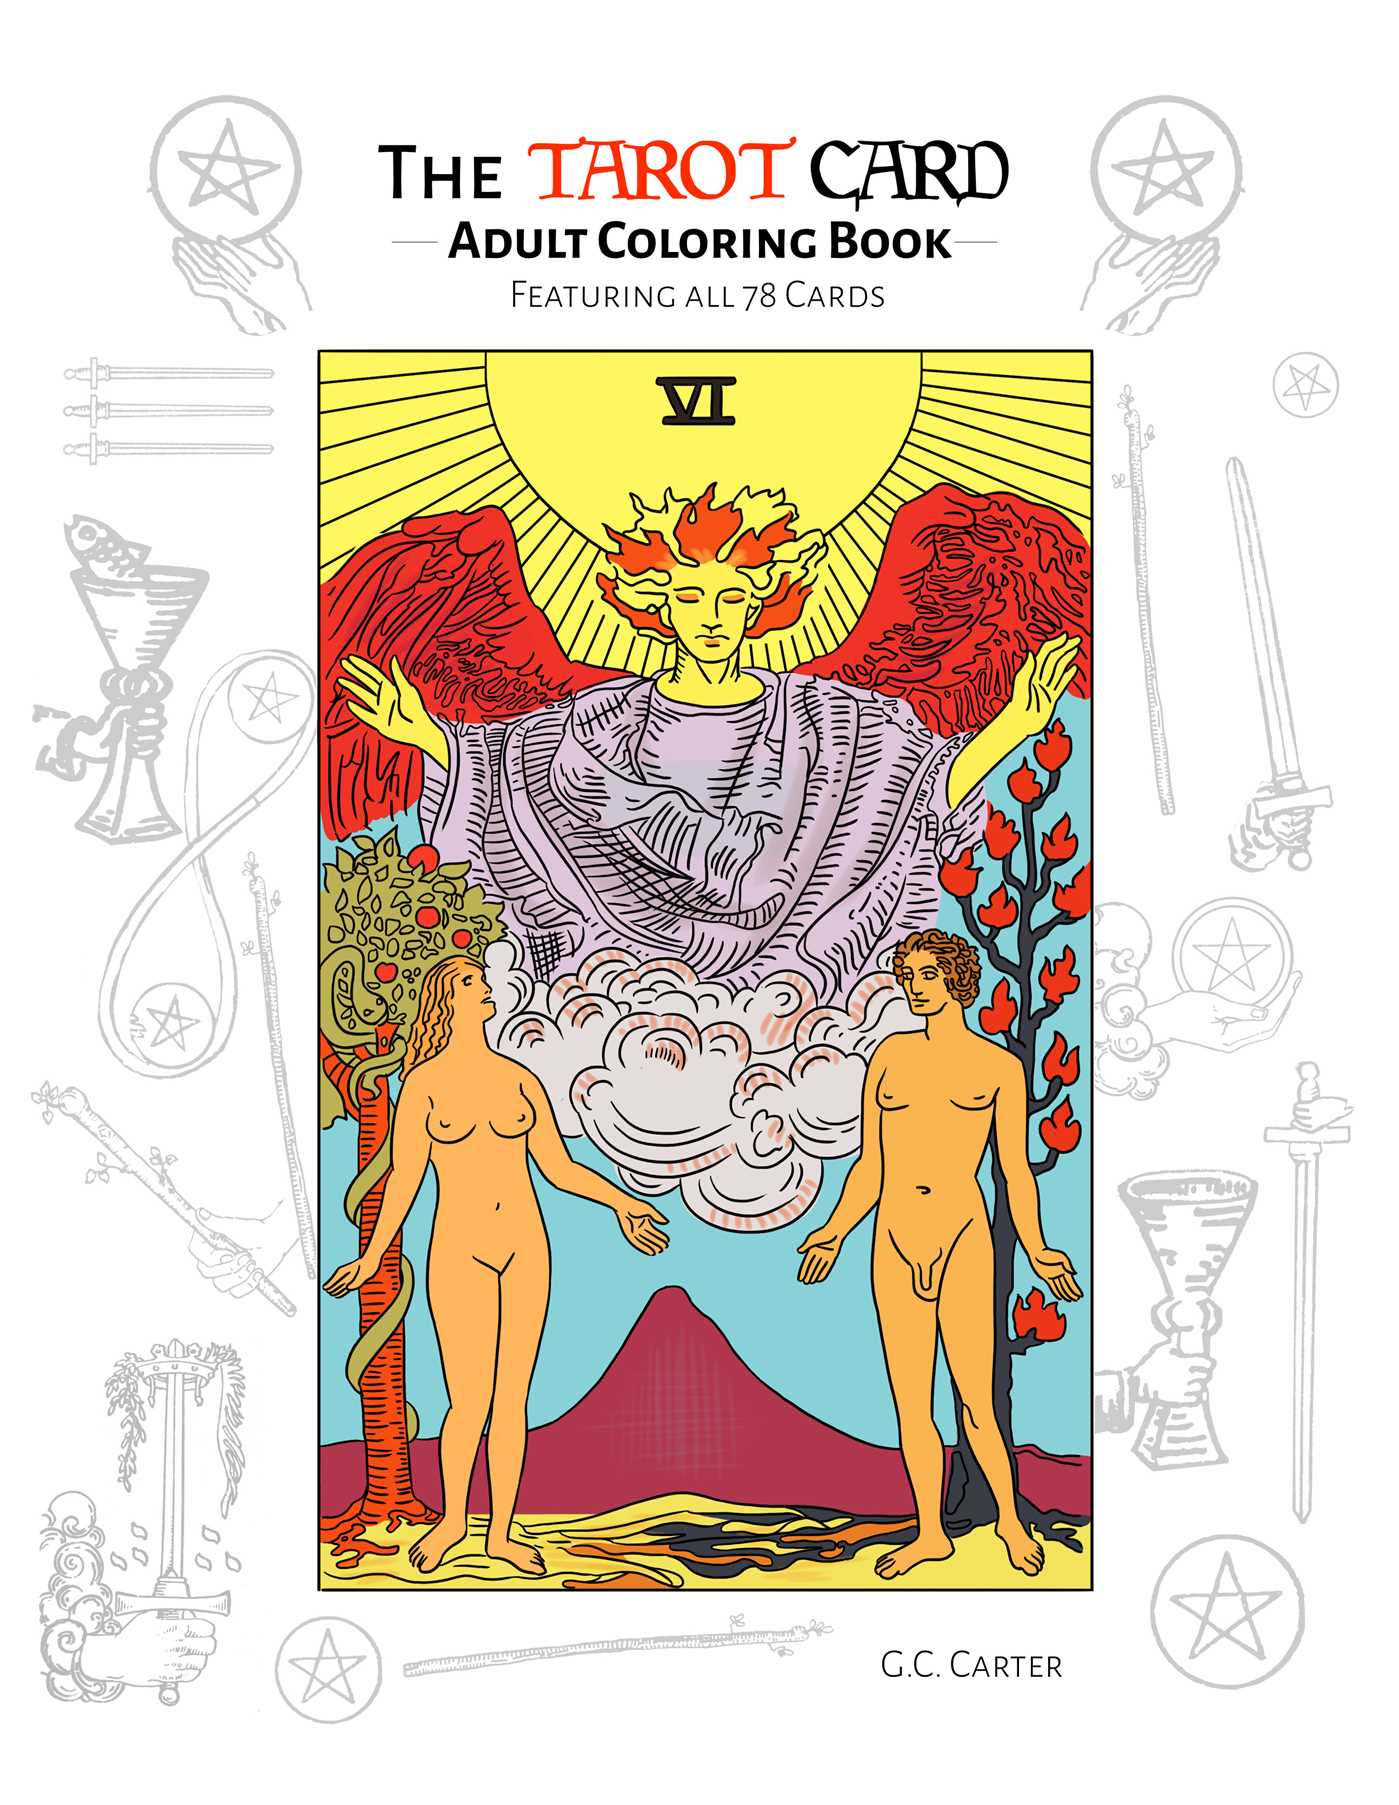 The tarot card adult coloring book 9781682612644 hr